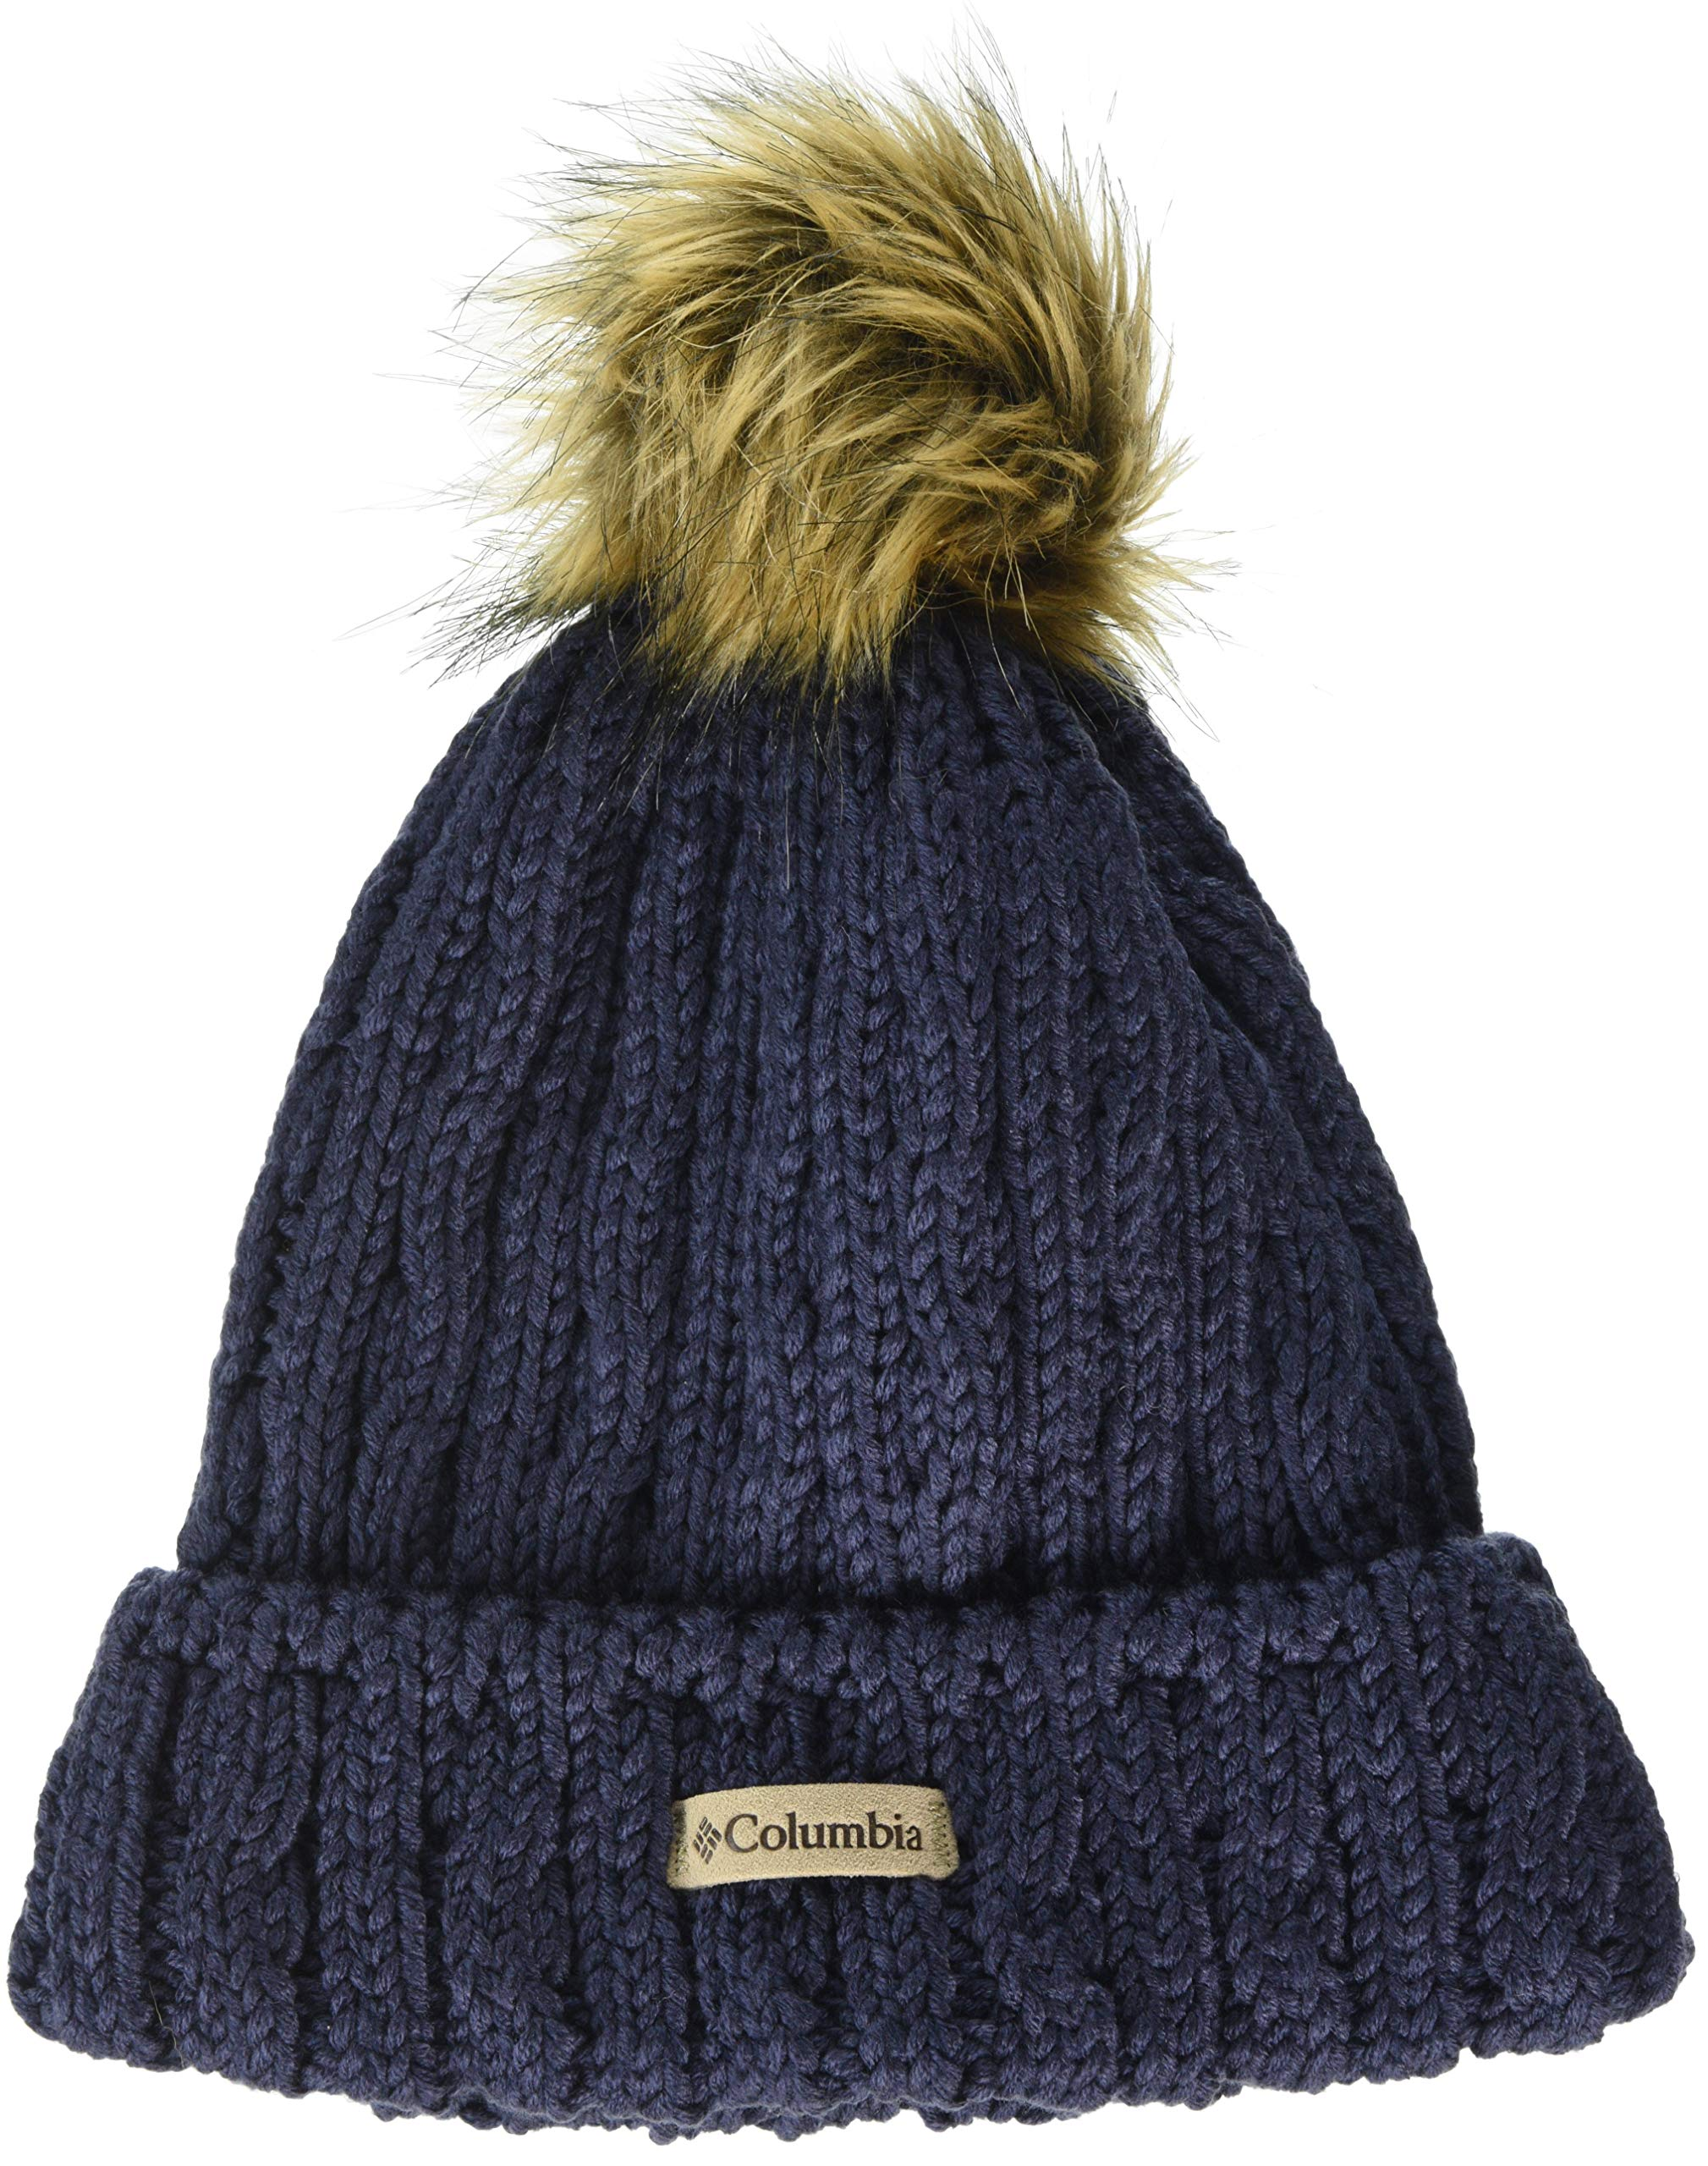 Columbia Catacomb Crest Beanie, Nocturnal, One Size